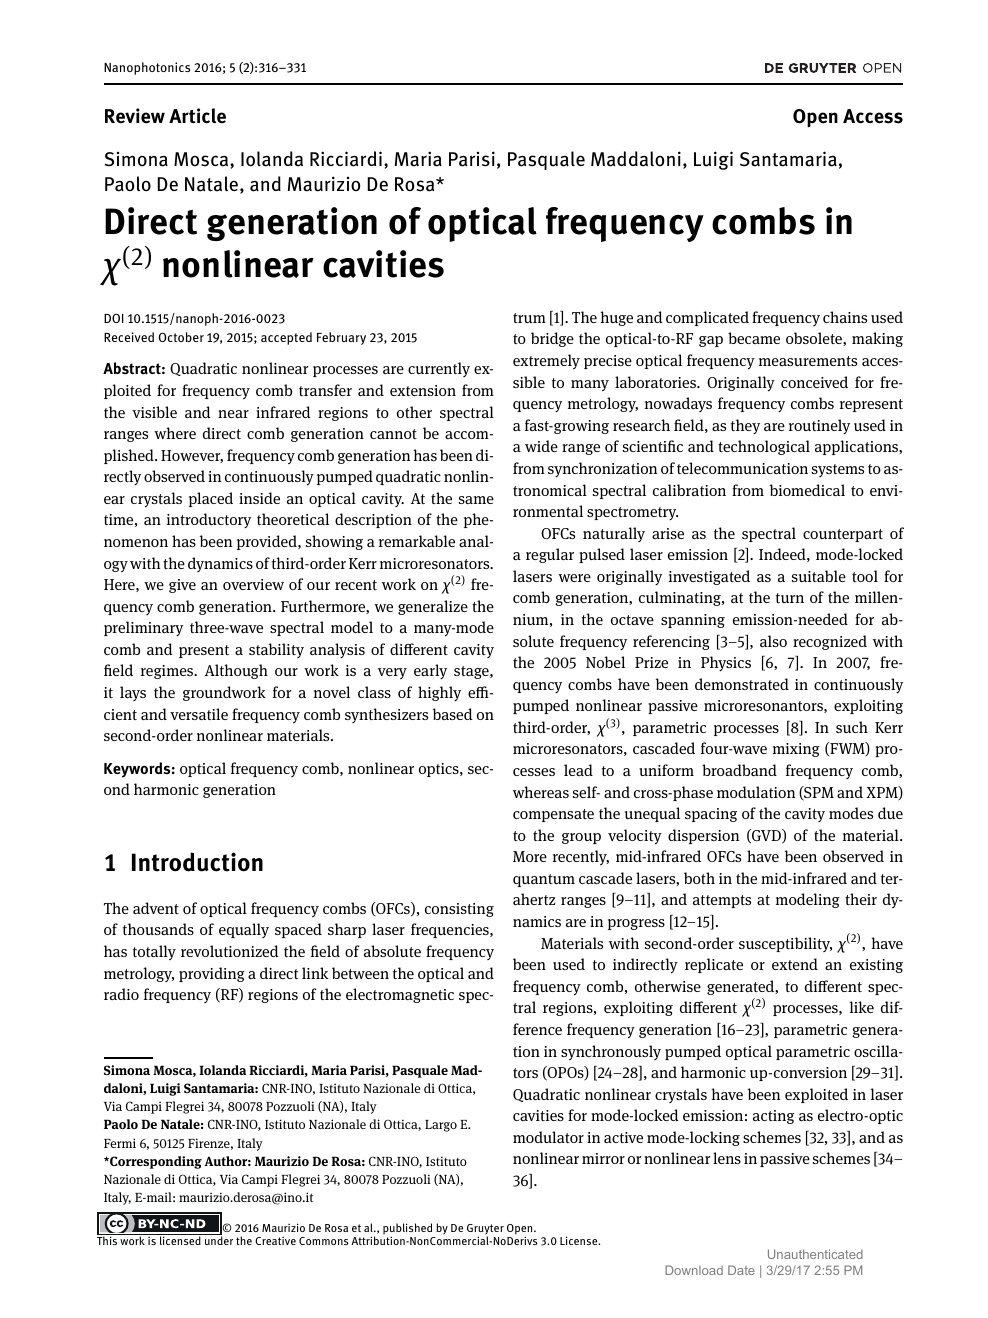 Direct generation of optical frequency combs in χ(2) nonlinear